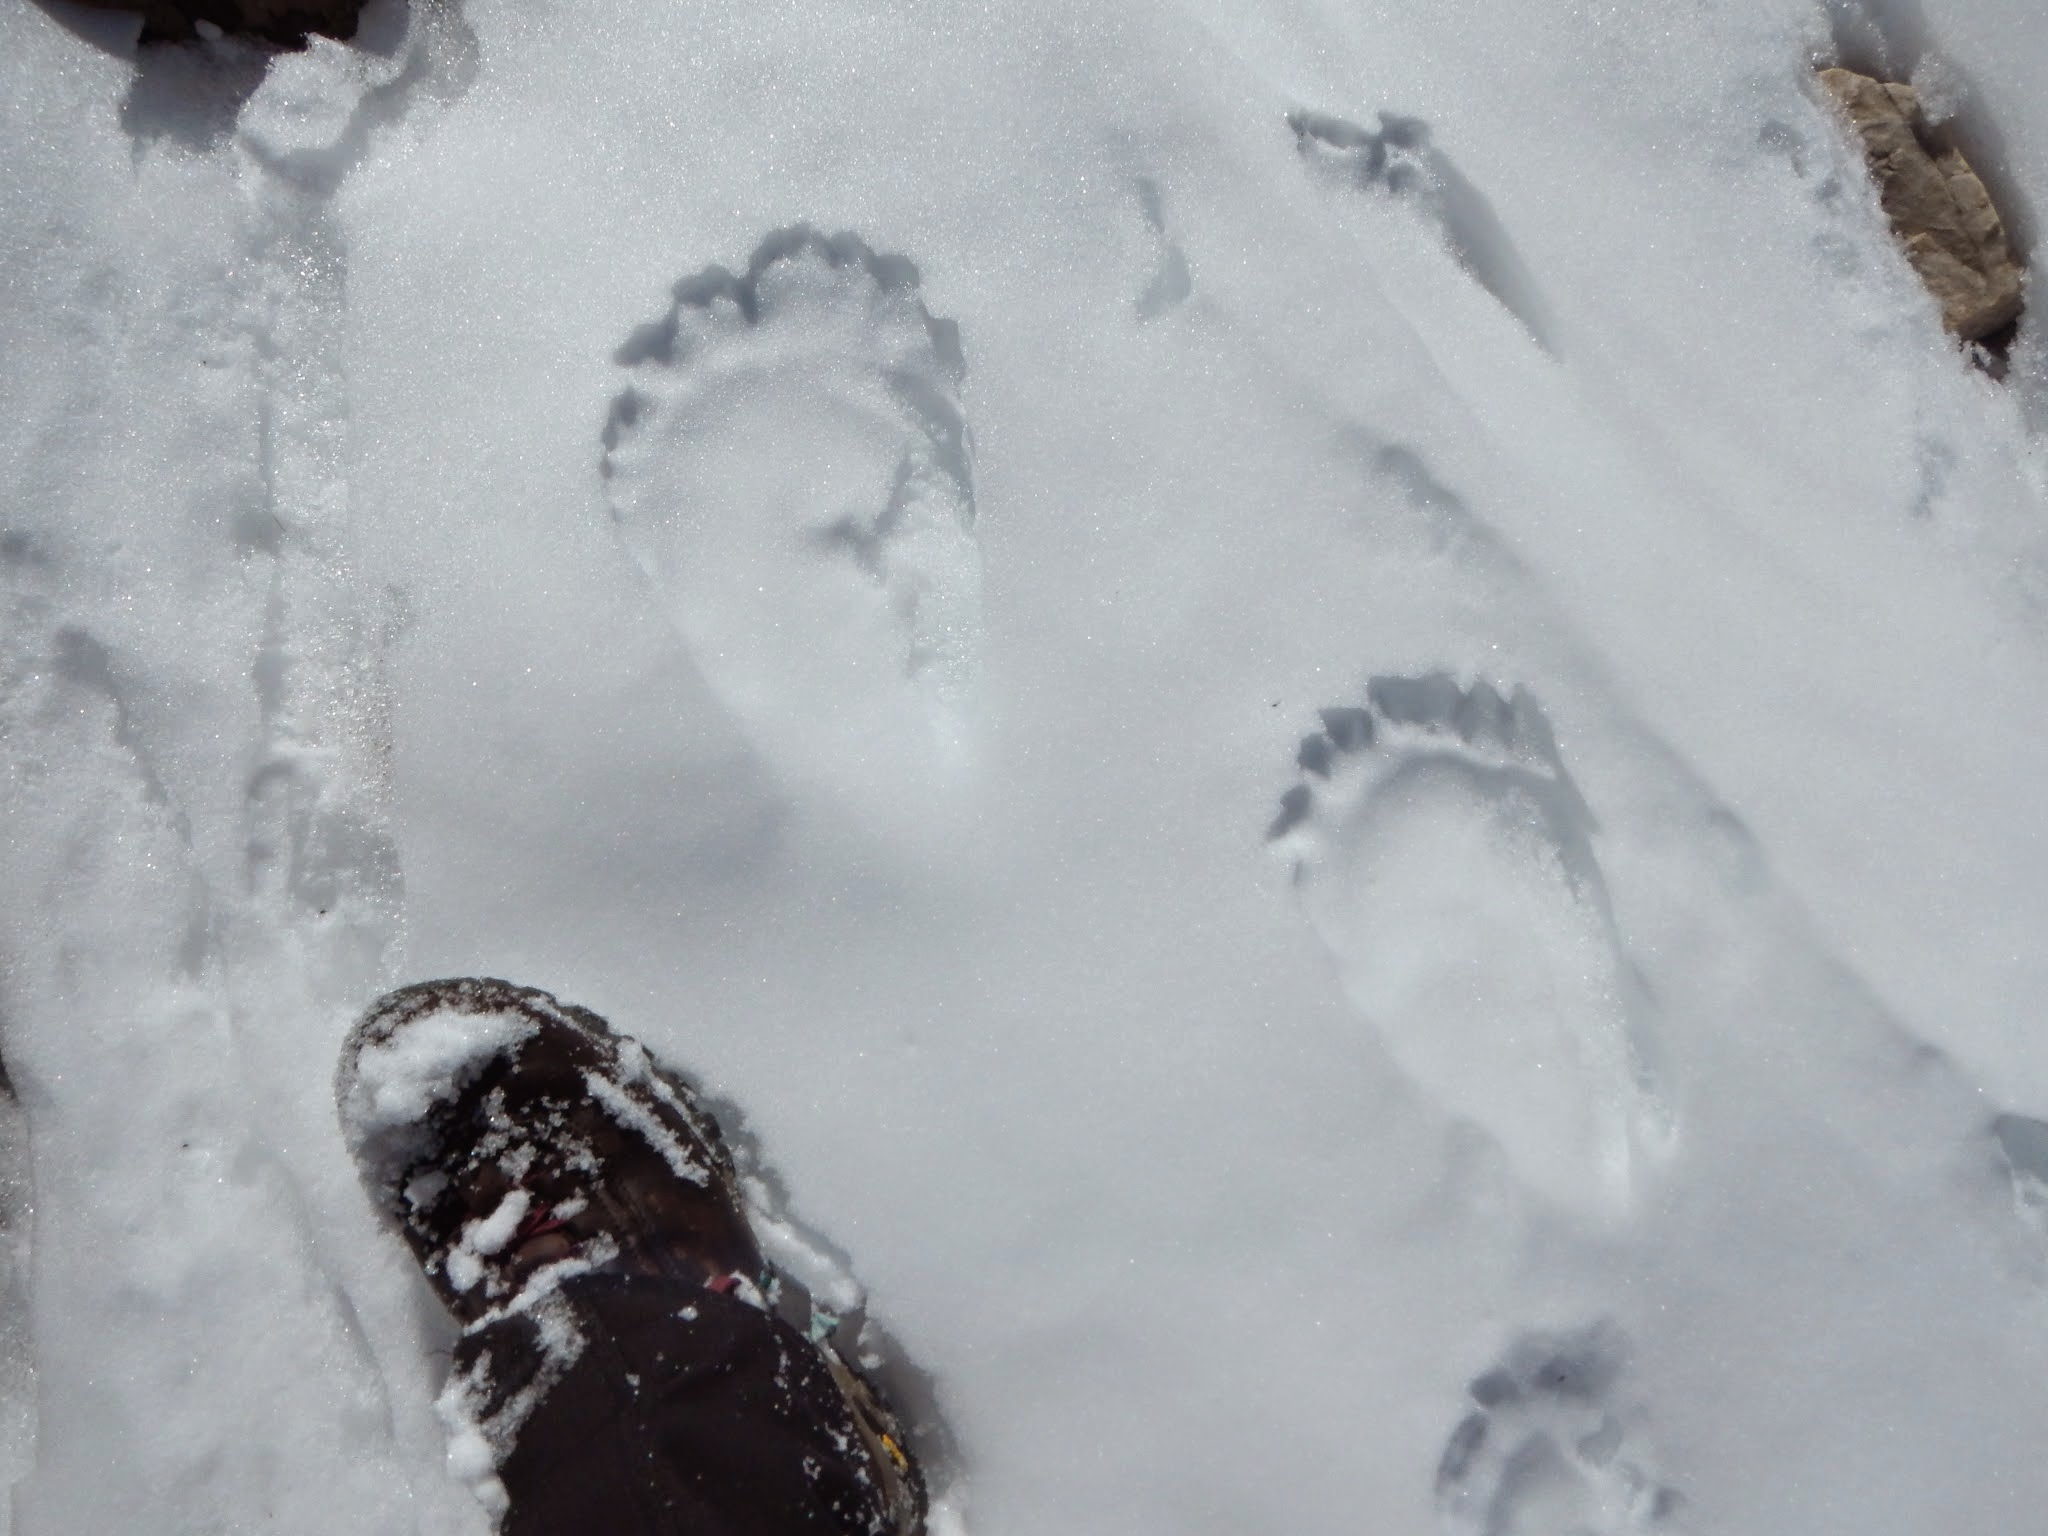 Photo: Strange features that sort of looked like footprints, but what could they be?